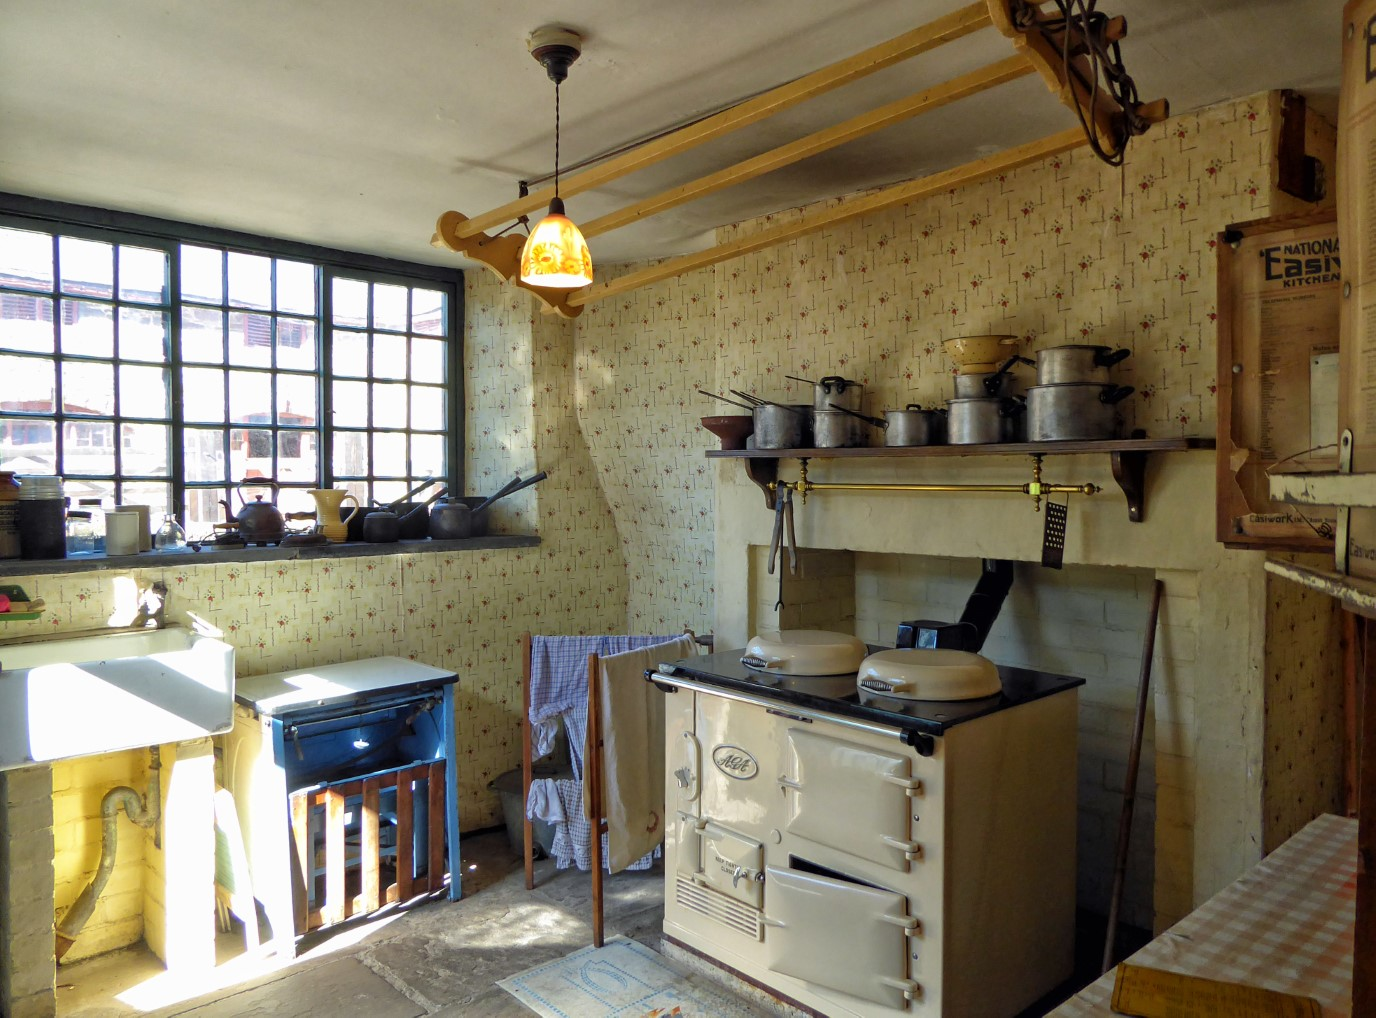 Old-fashioned kitchen range and sink